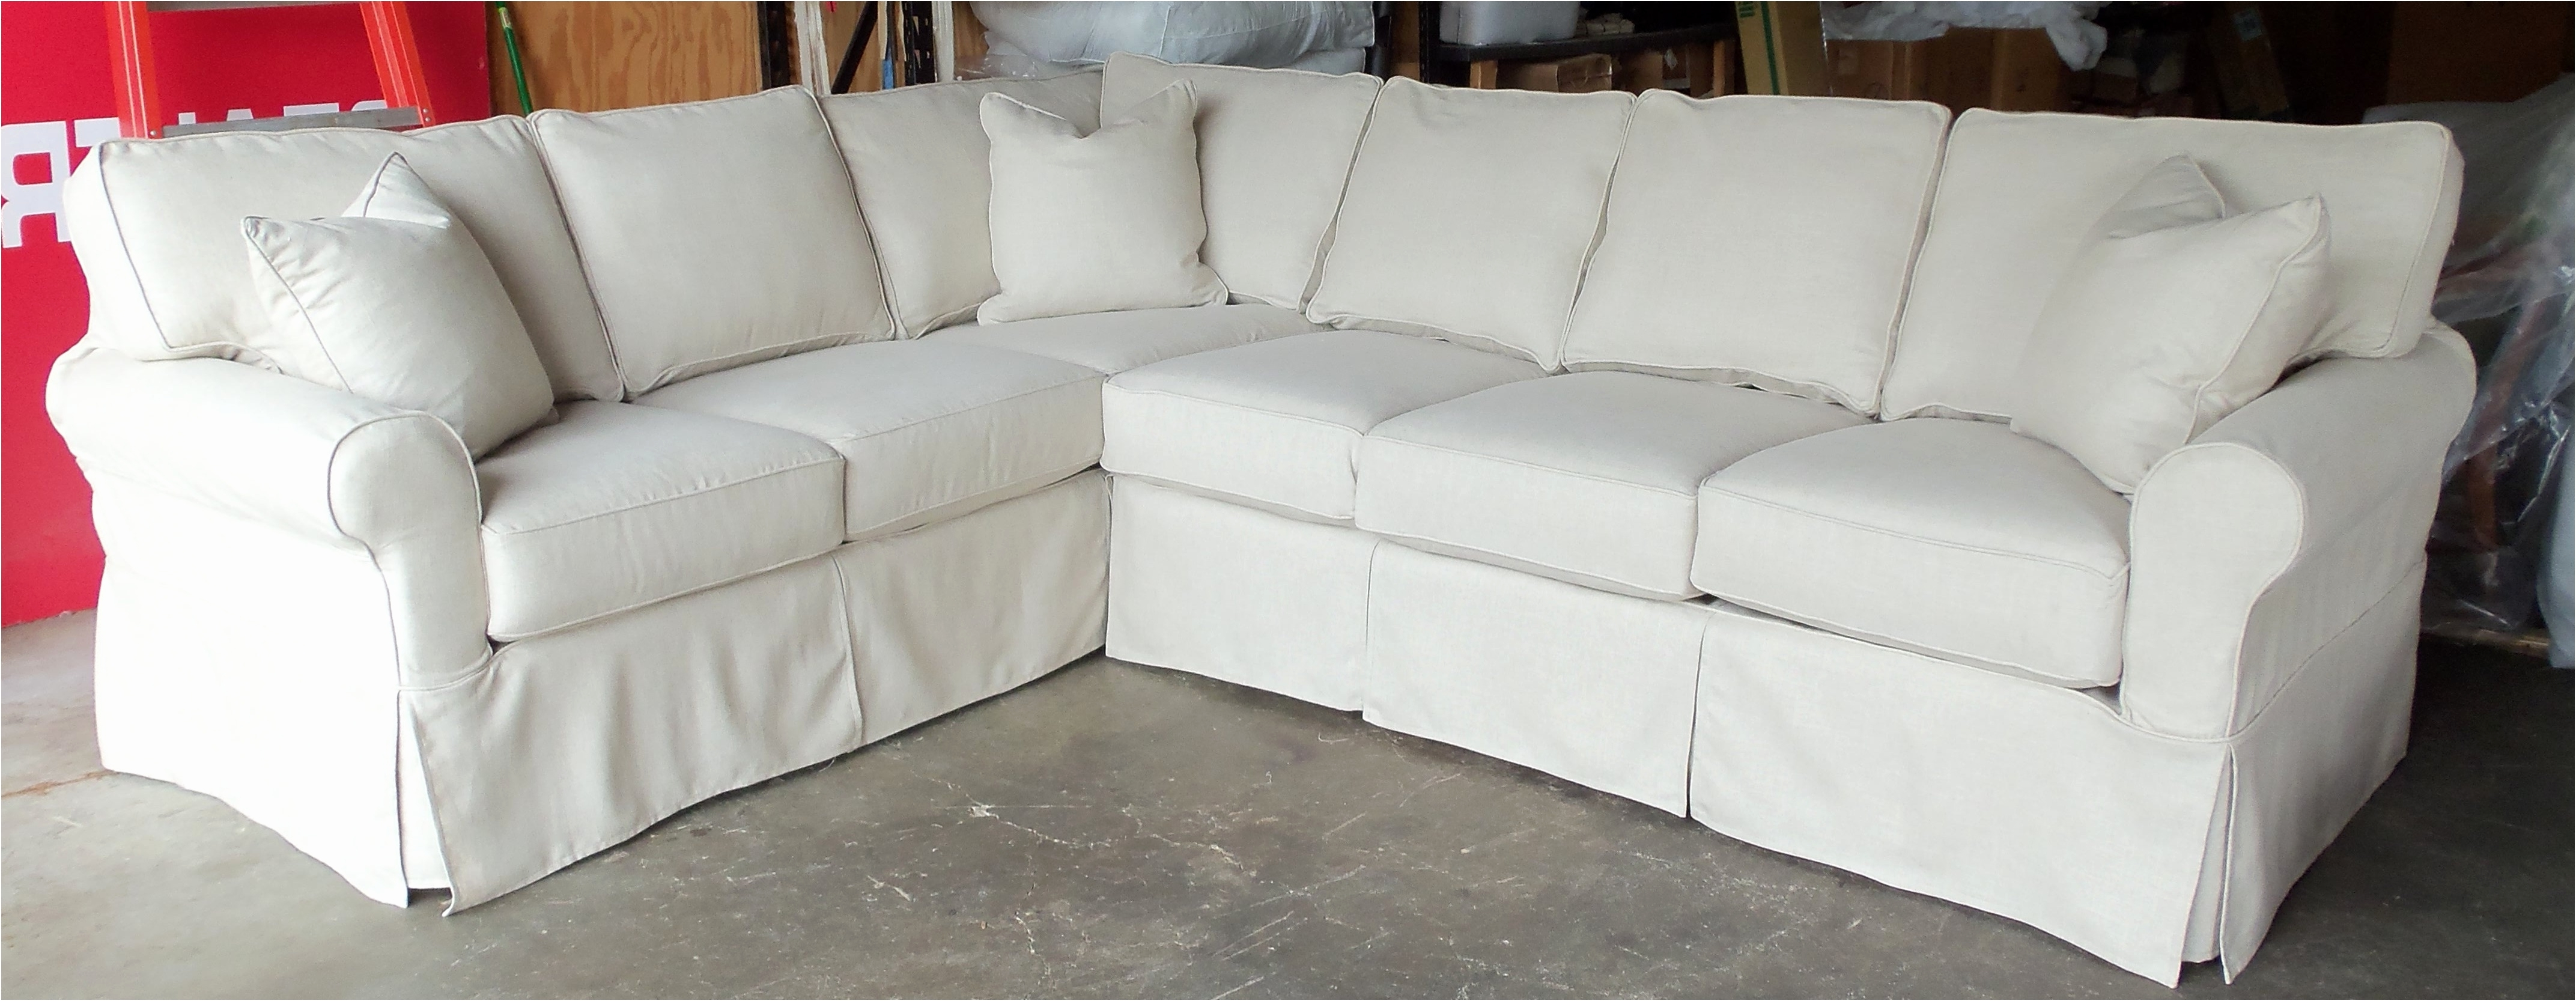 New Sofas At Target Elegant – Intuisiblog With Regard To Best And Newest Target Sectional Sofas (View 8 of 20)